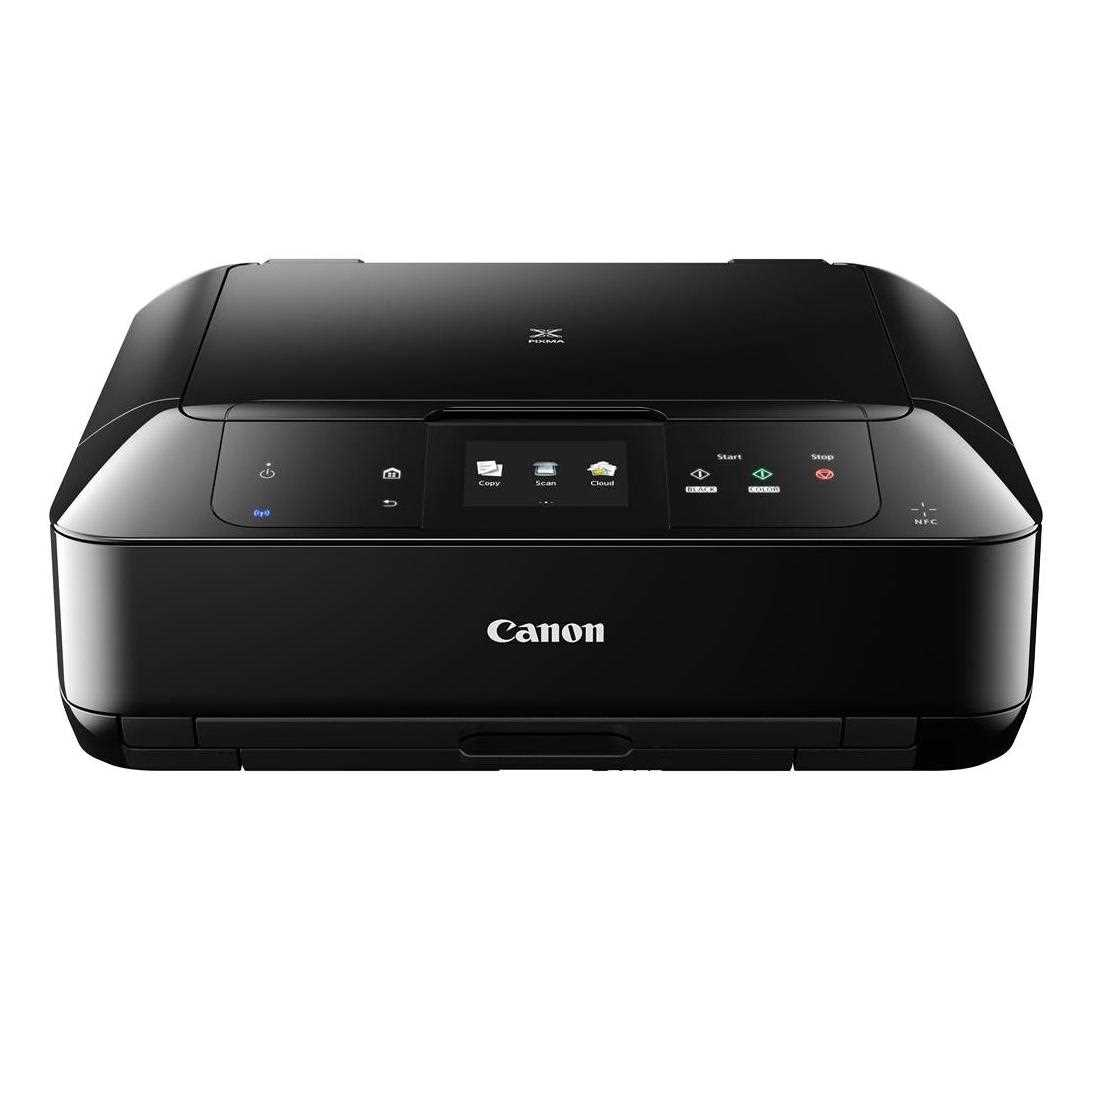 Canon Pixma Mg7570 Photo All In One Price 30 Nov 2018 Inkjet Printer G3010 Print Scan Copy Wifi Reviews And Specifications